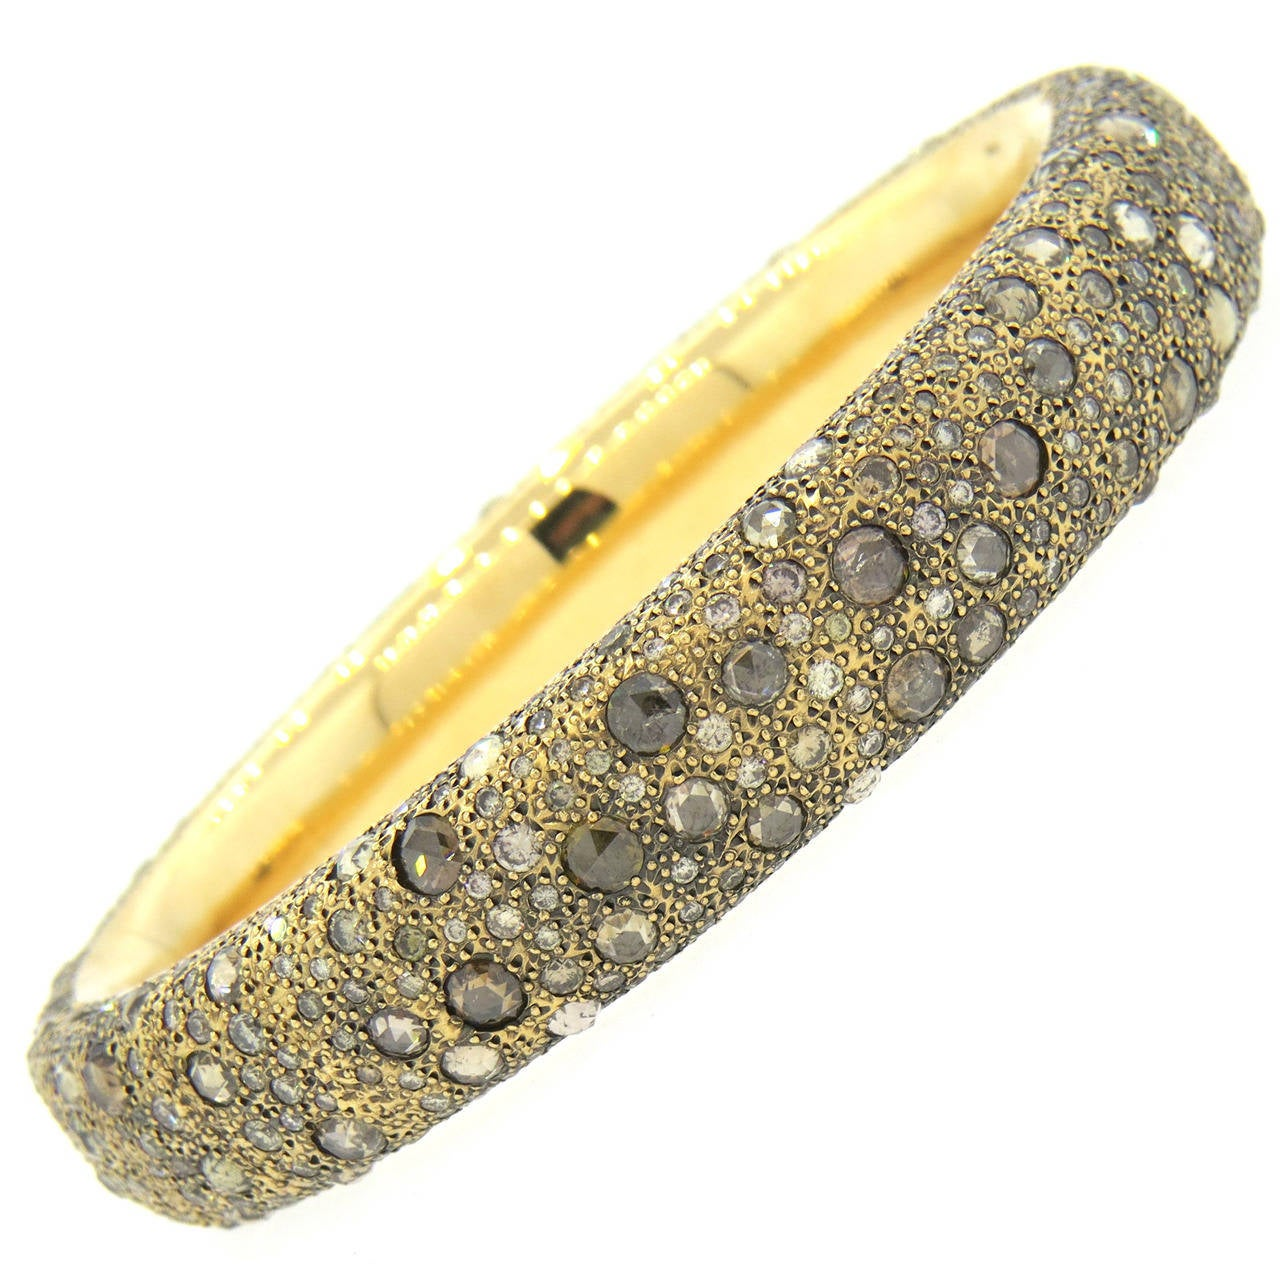 diamond l at gold bracelets bangles for id jewelry silver turkish sale bangle unique j